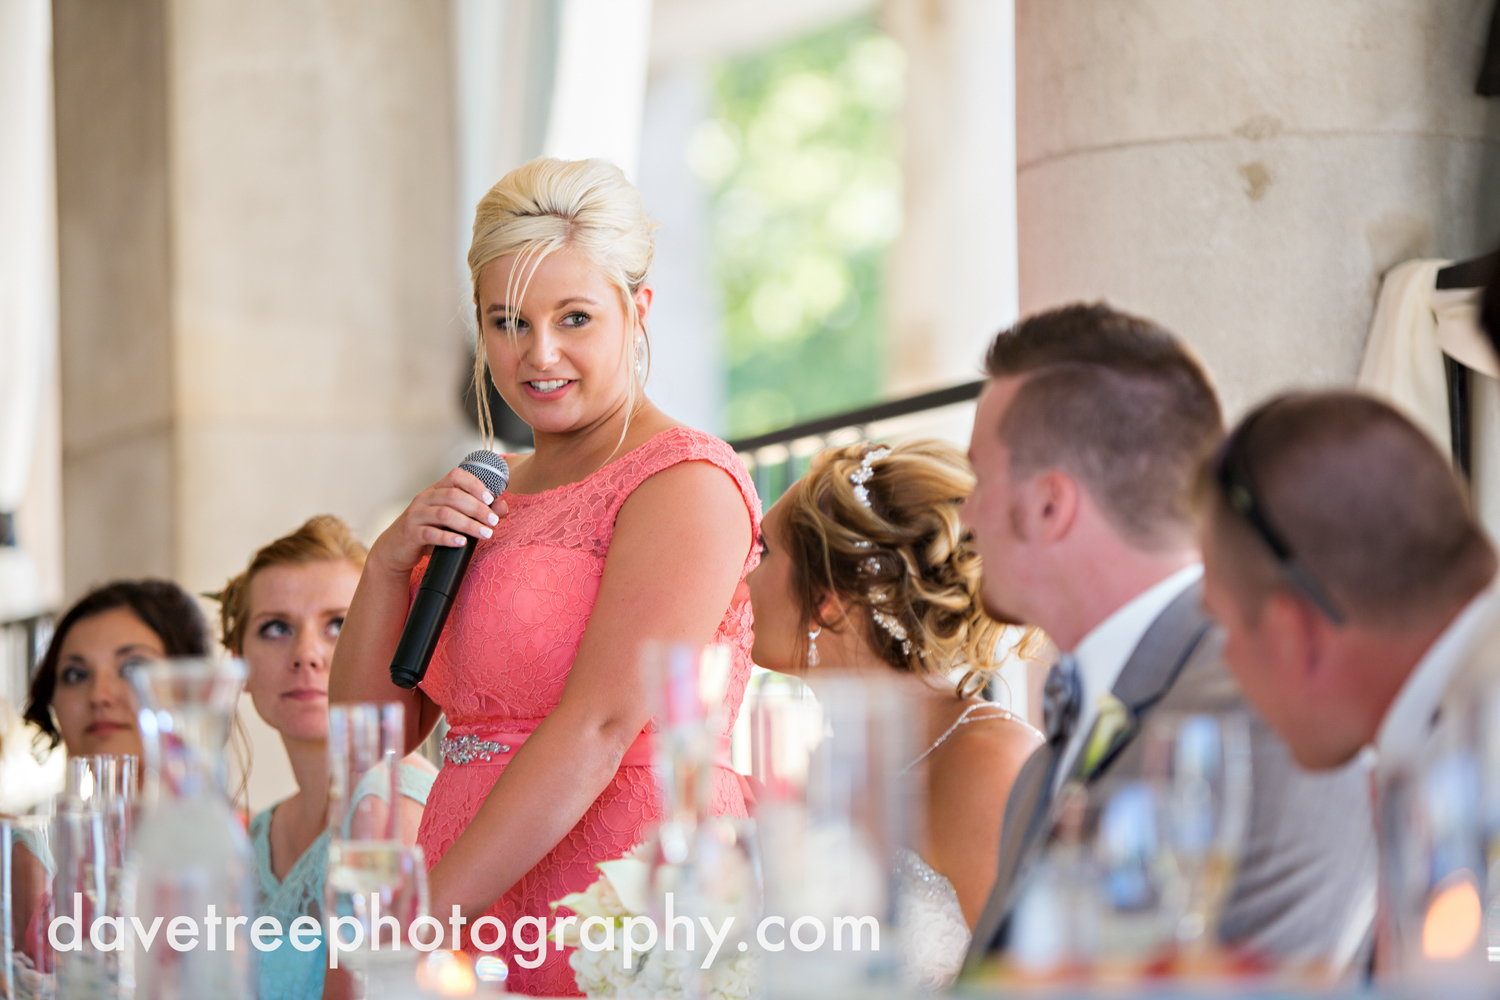 veranda_wedding_photographer_st_joseph_wedding_128.jpg